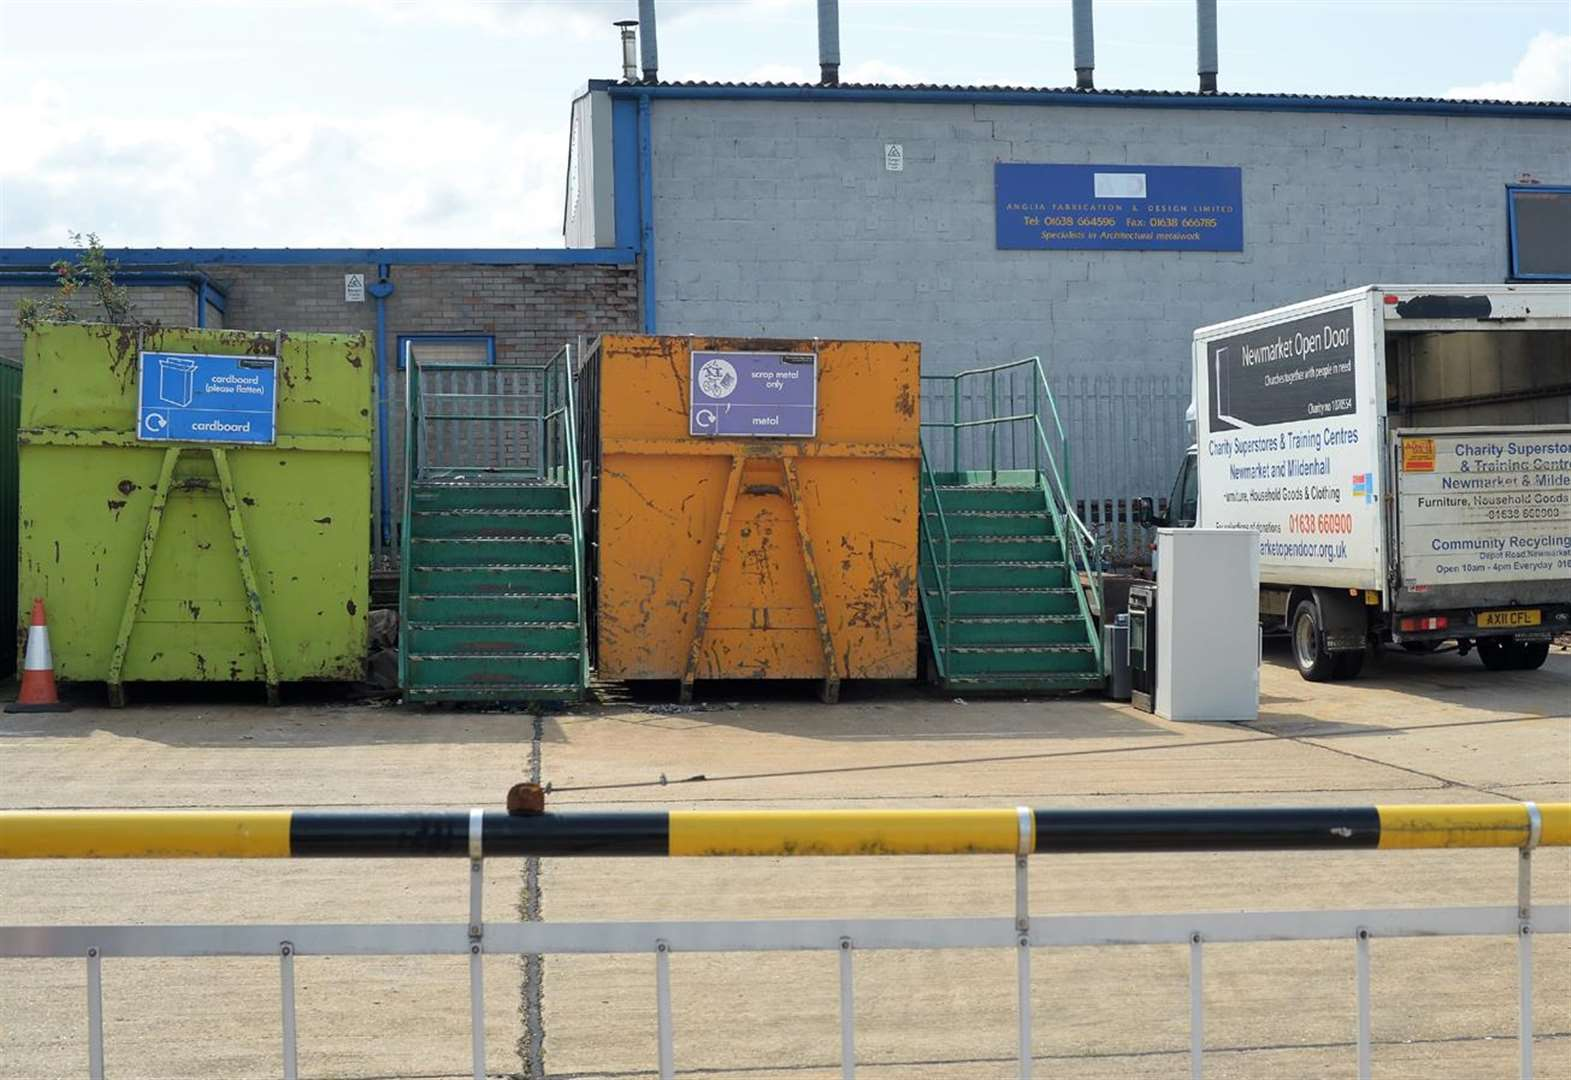 Suffolk County Council will not step in to save Newmarket's recycling centre